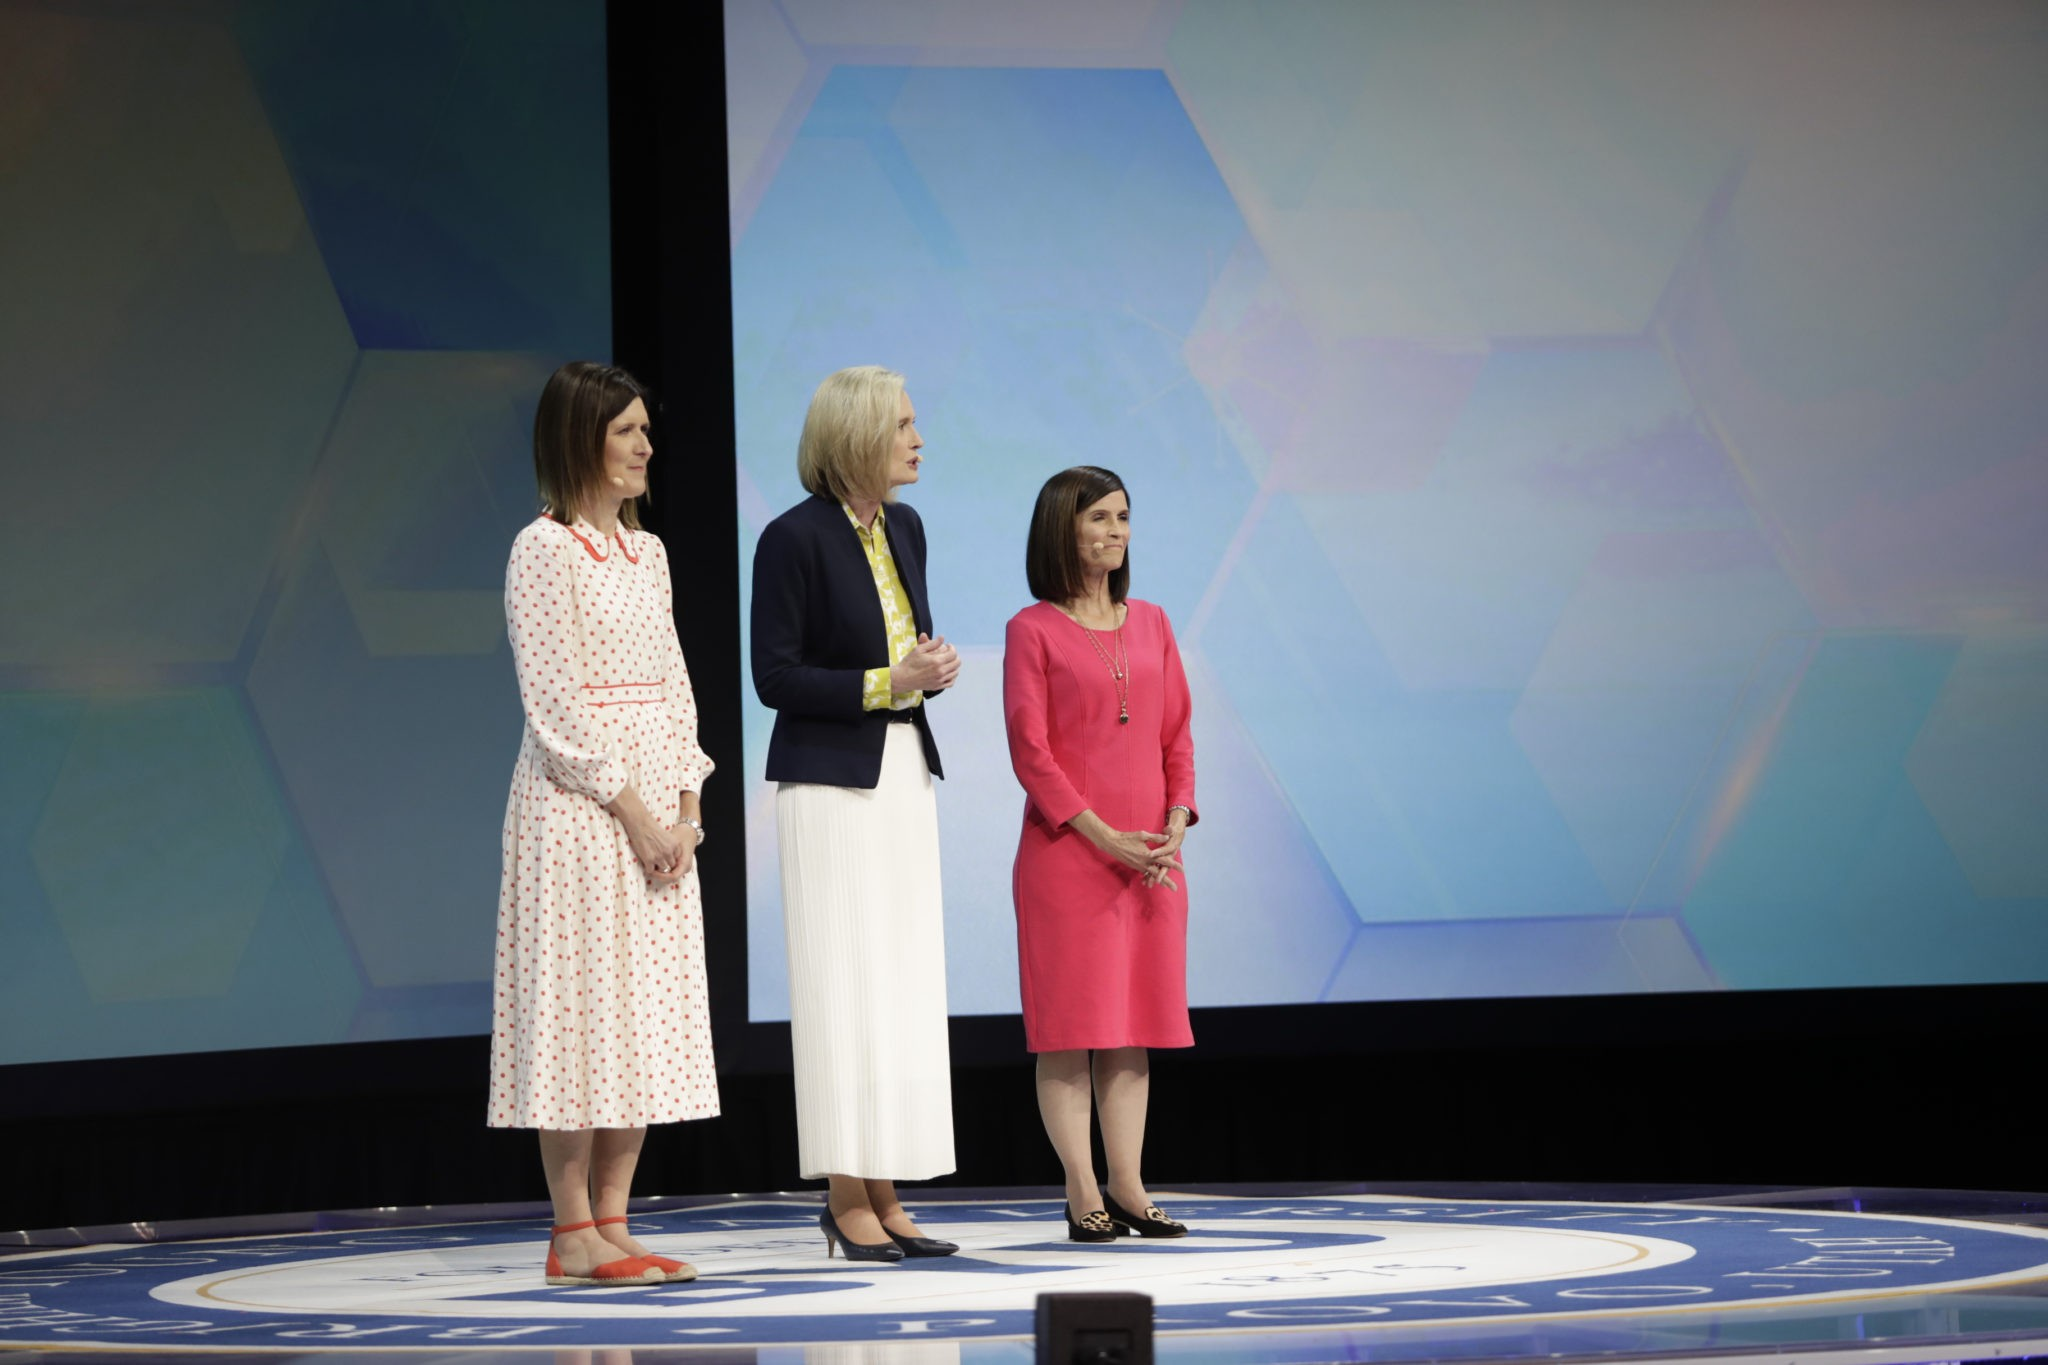 BYU Women's Conference focuses on what it means to be a daughter of God